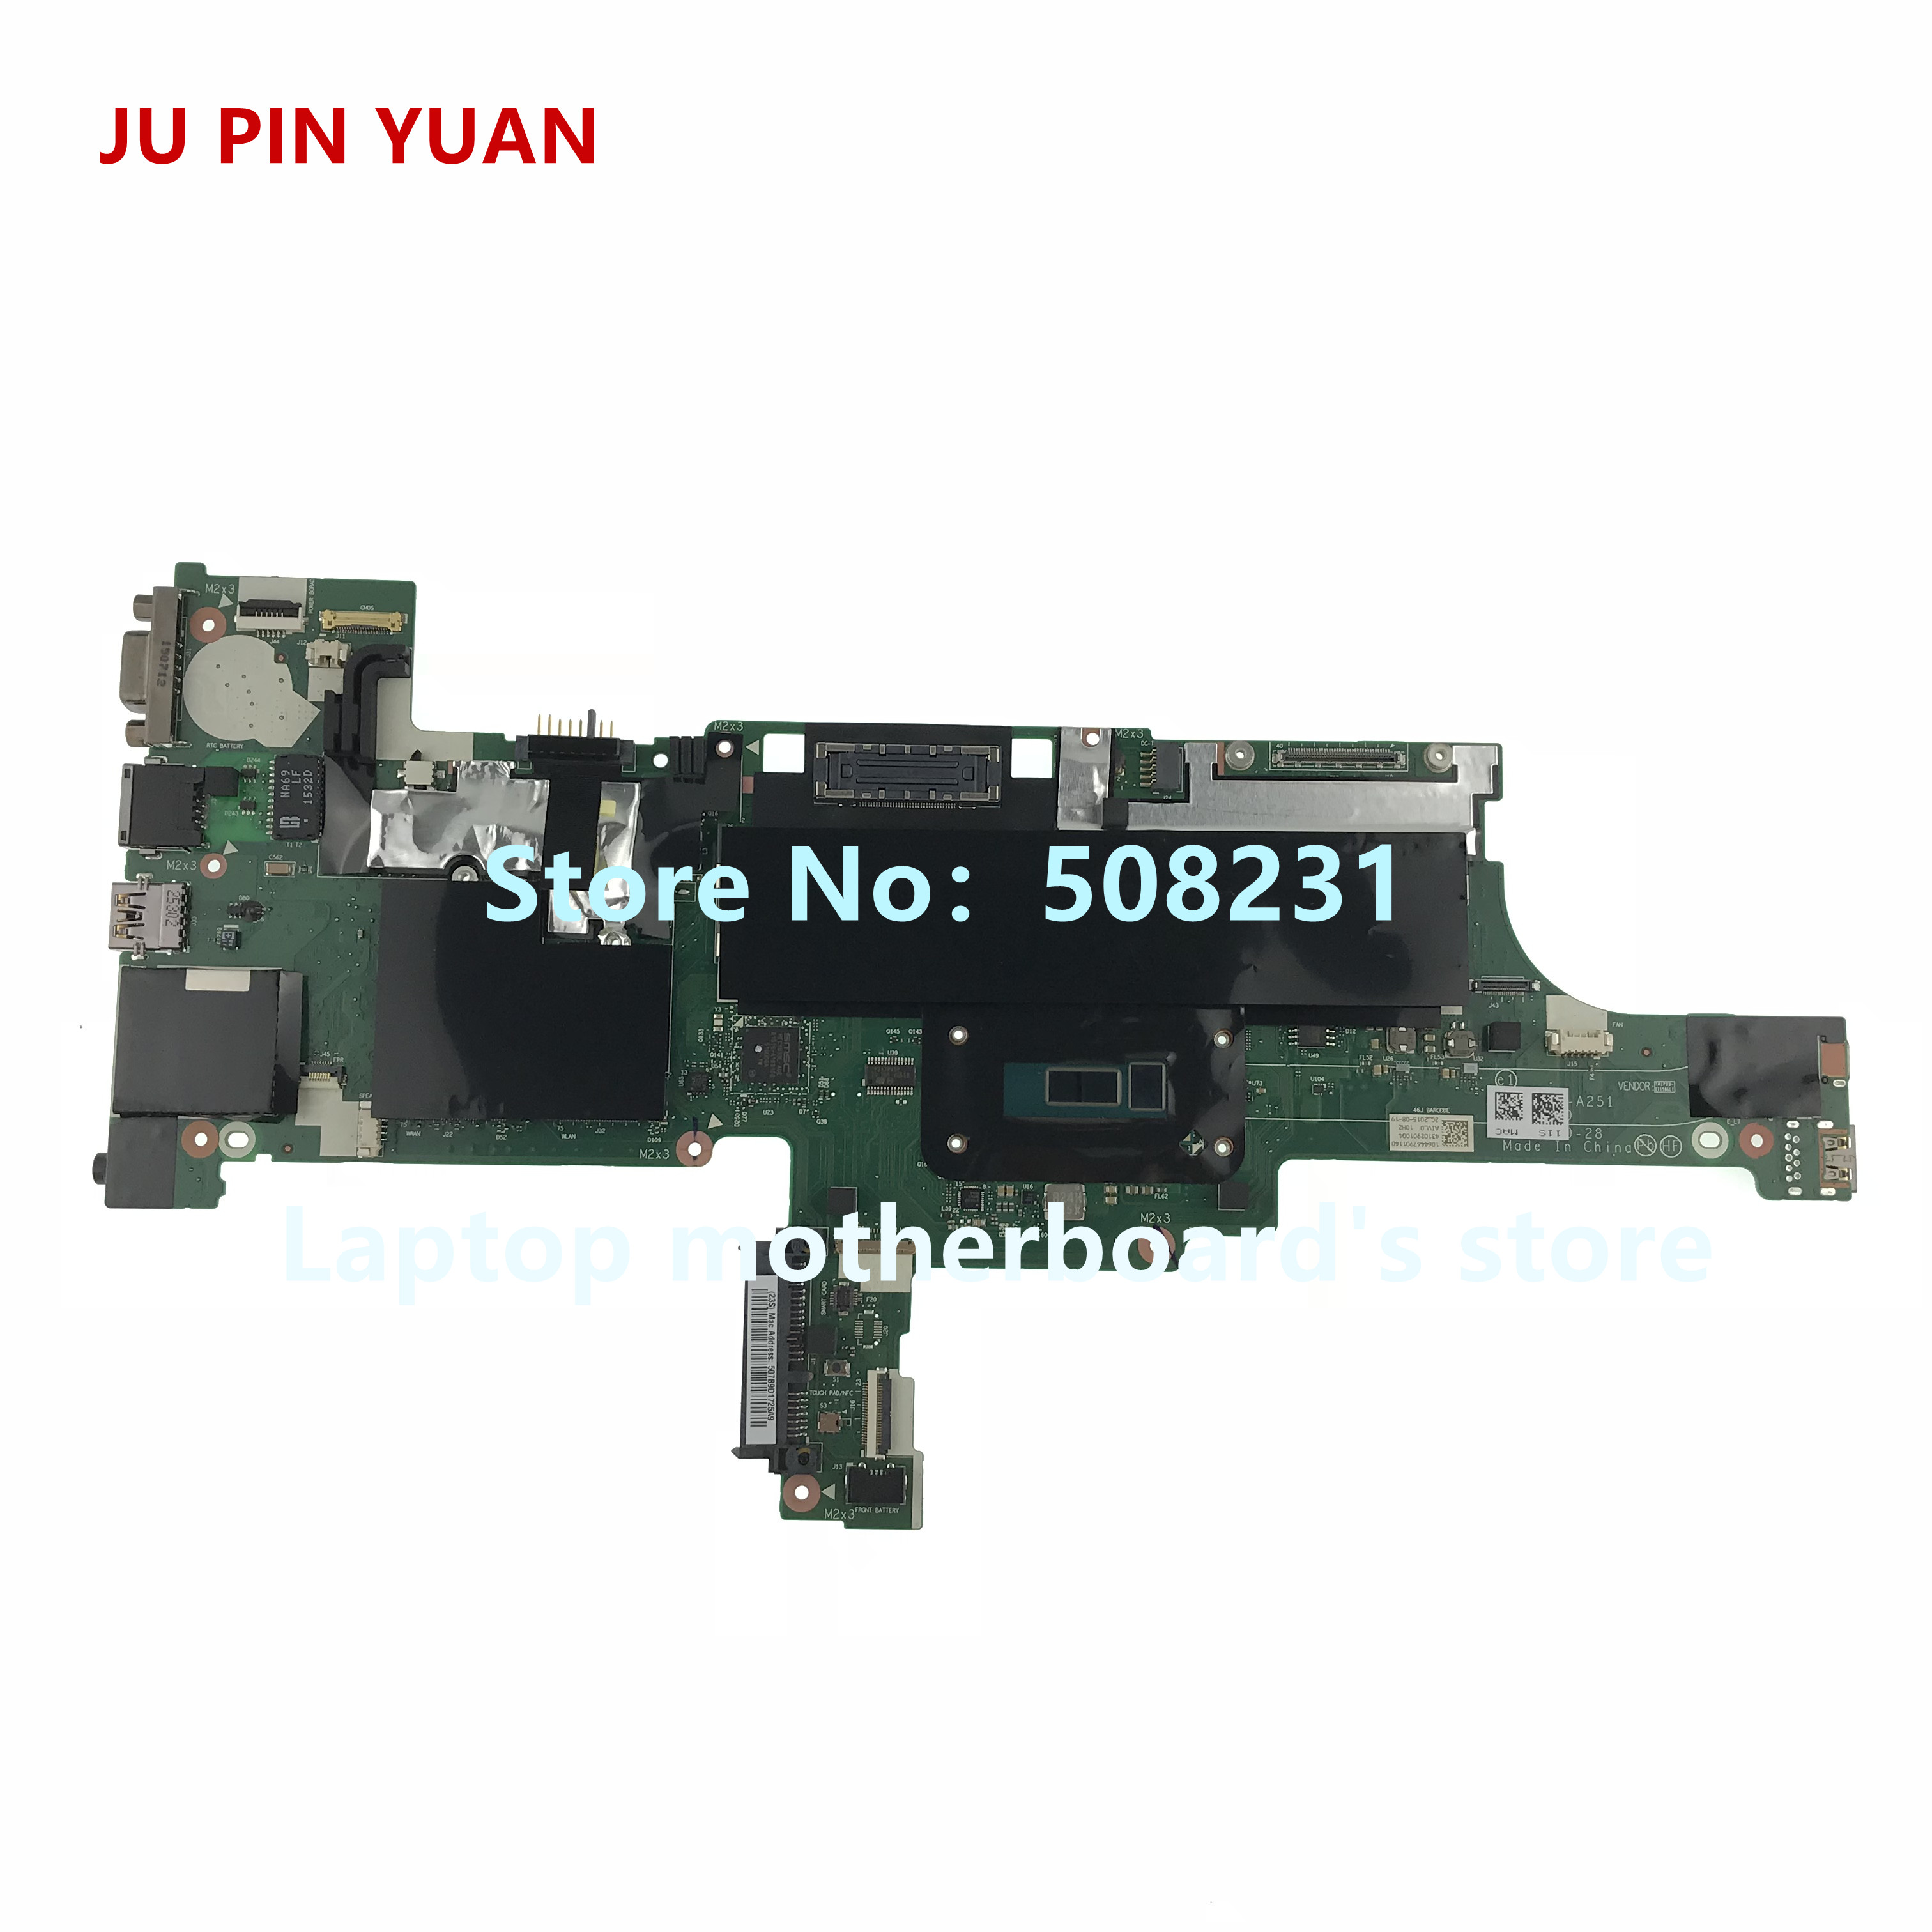 JU PIN YUAN AIVLO NM-A251 mainboard For Lenovo Thinkpad T450 laptop motherboard with <font><b>i7</b></font>-<font><b>5600U</b></font> fully Tested image